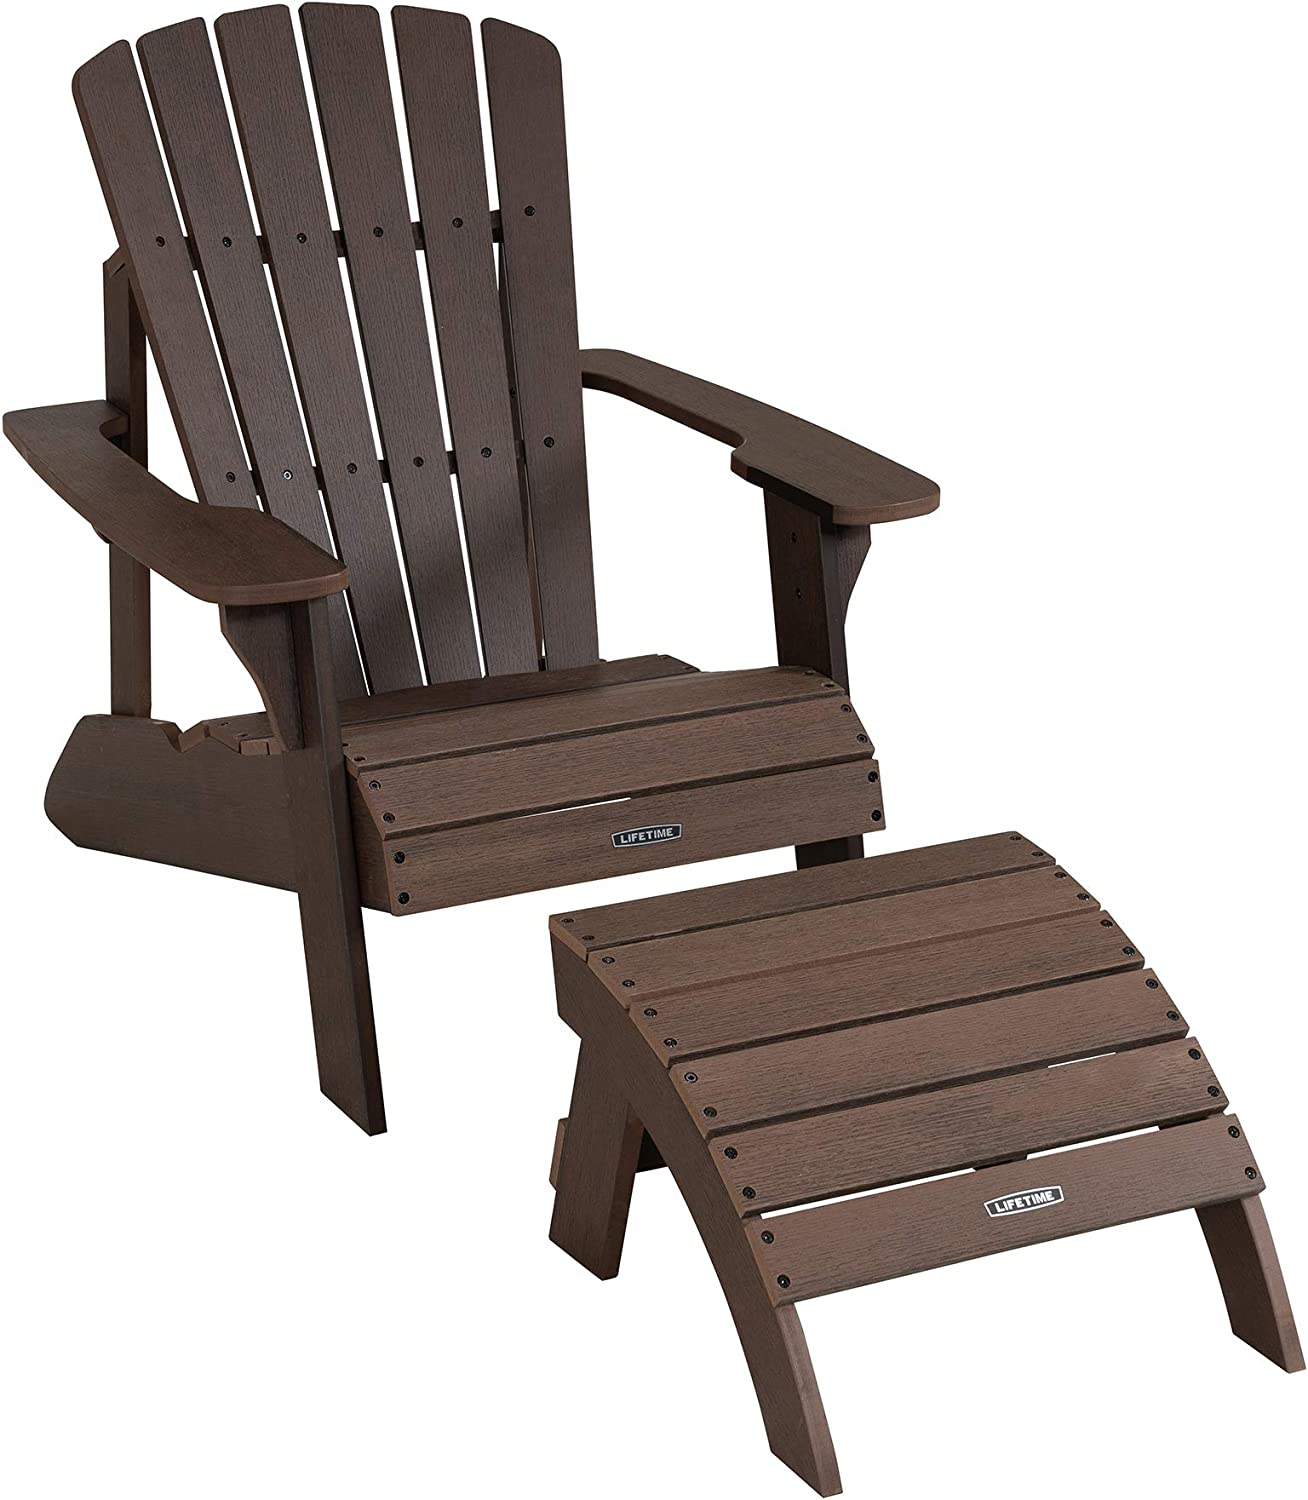 Lifetime 60294 Adirondack Chair And Ottoman Set Rustic Brown Garden Outdoor